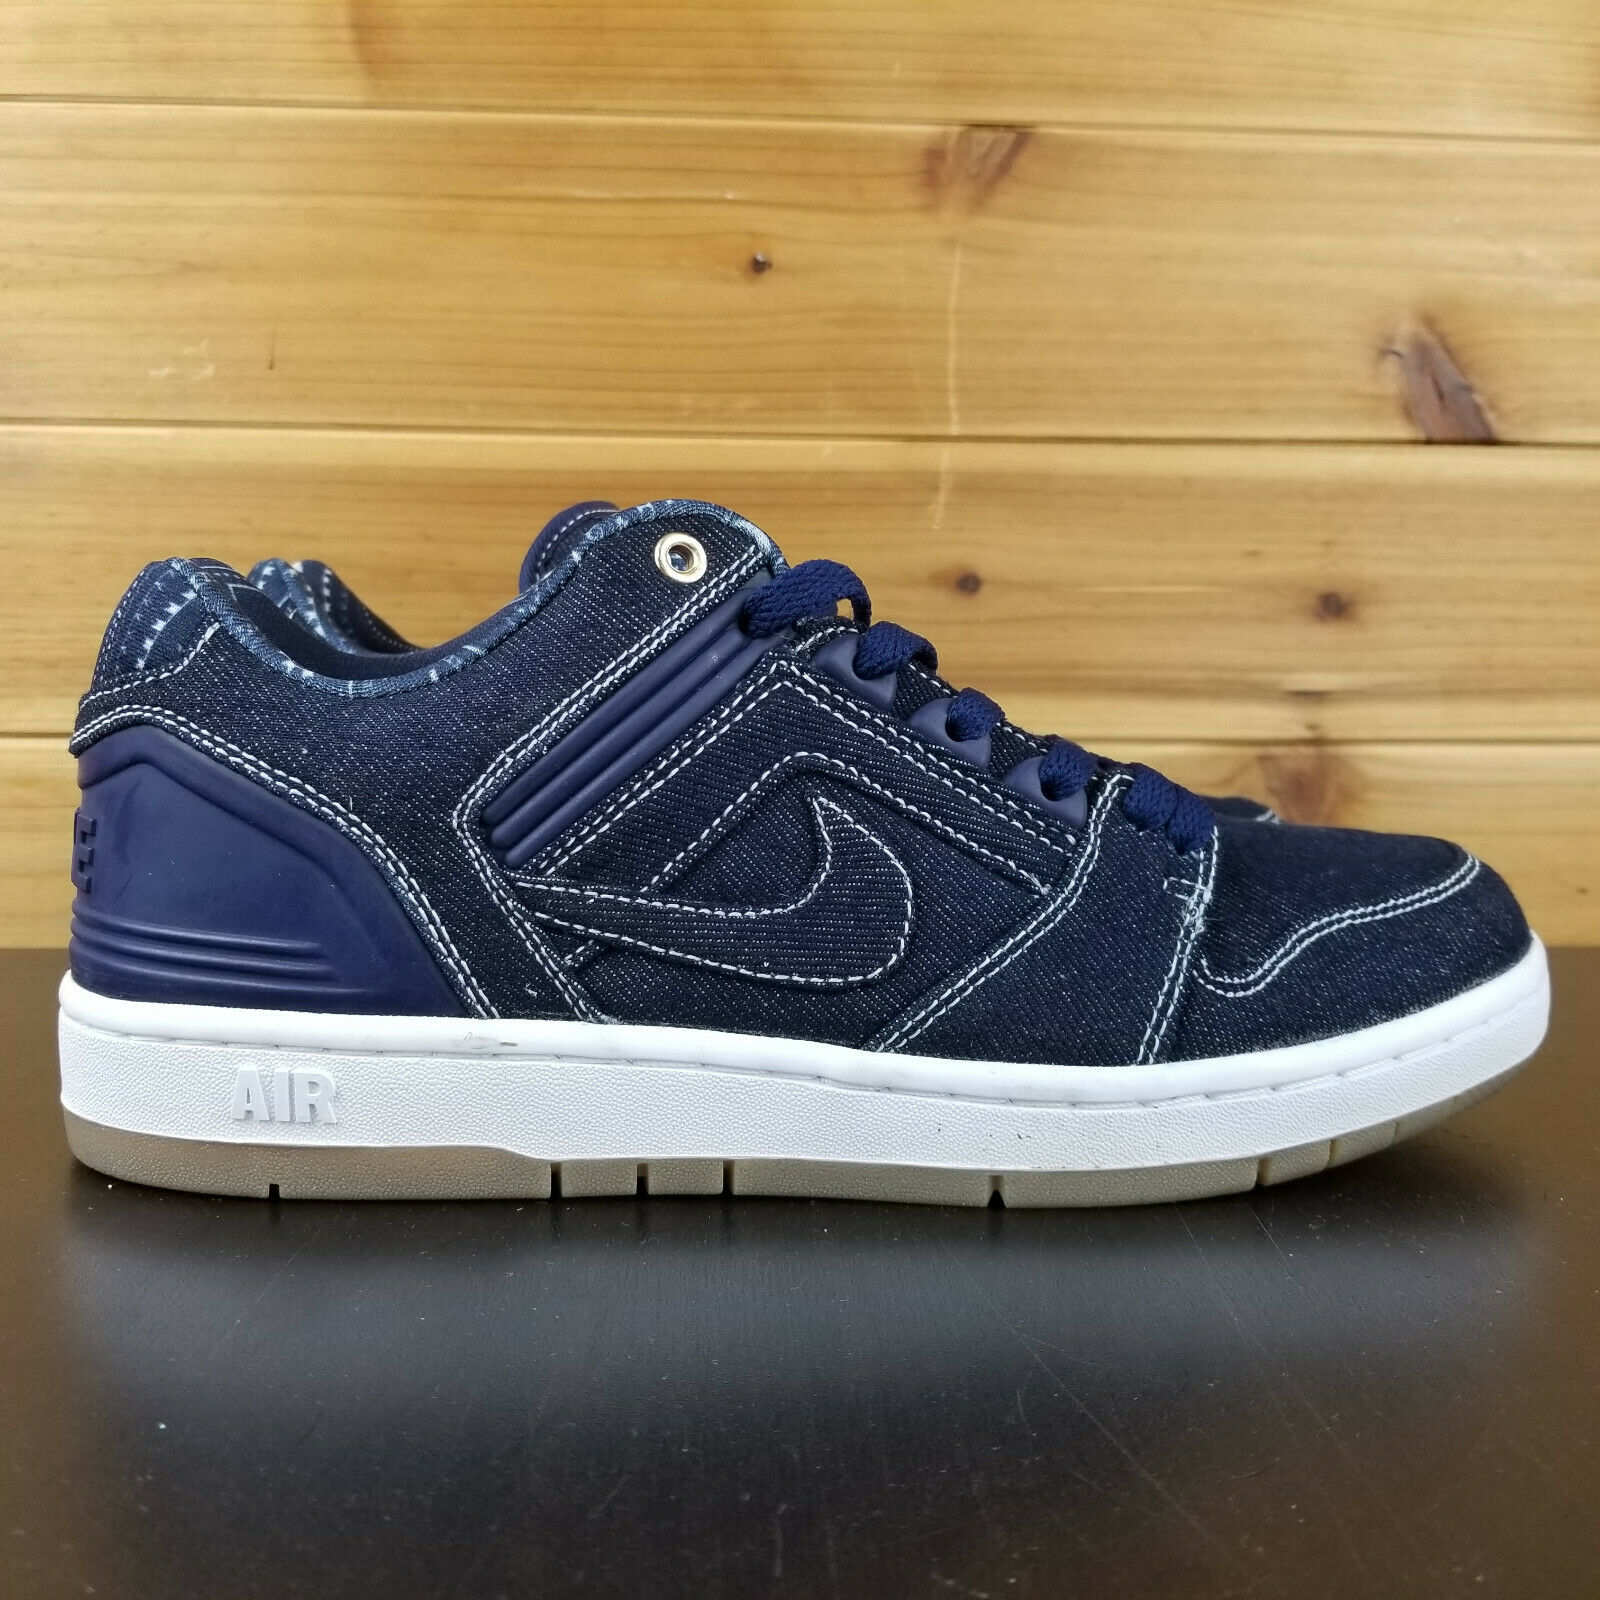 Nike SB Air Force II Low Rivals Shoes